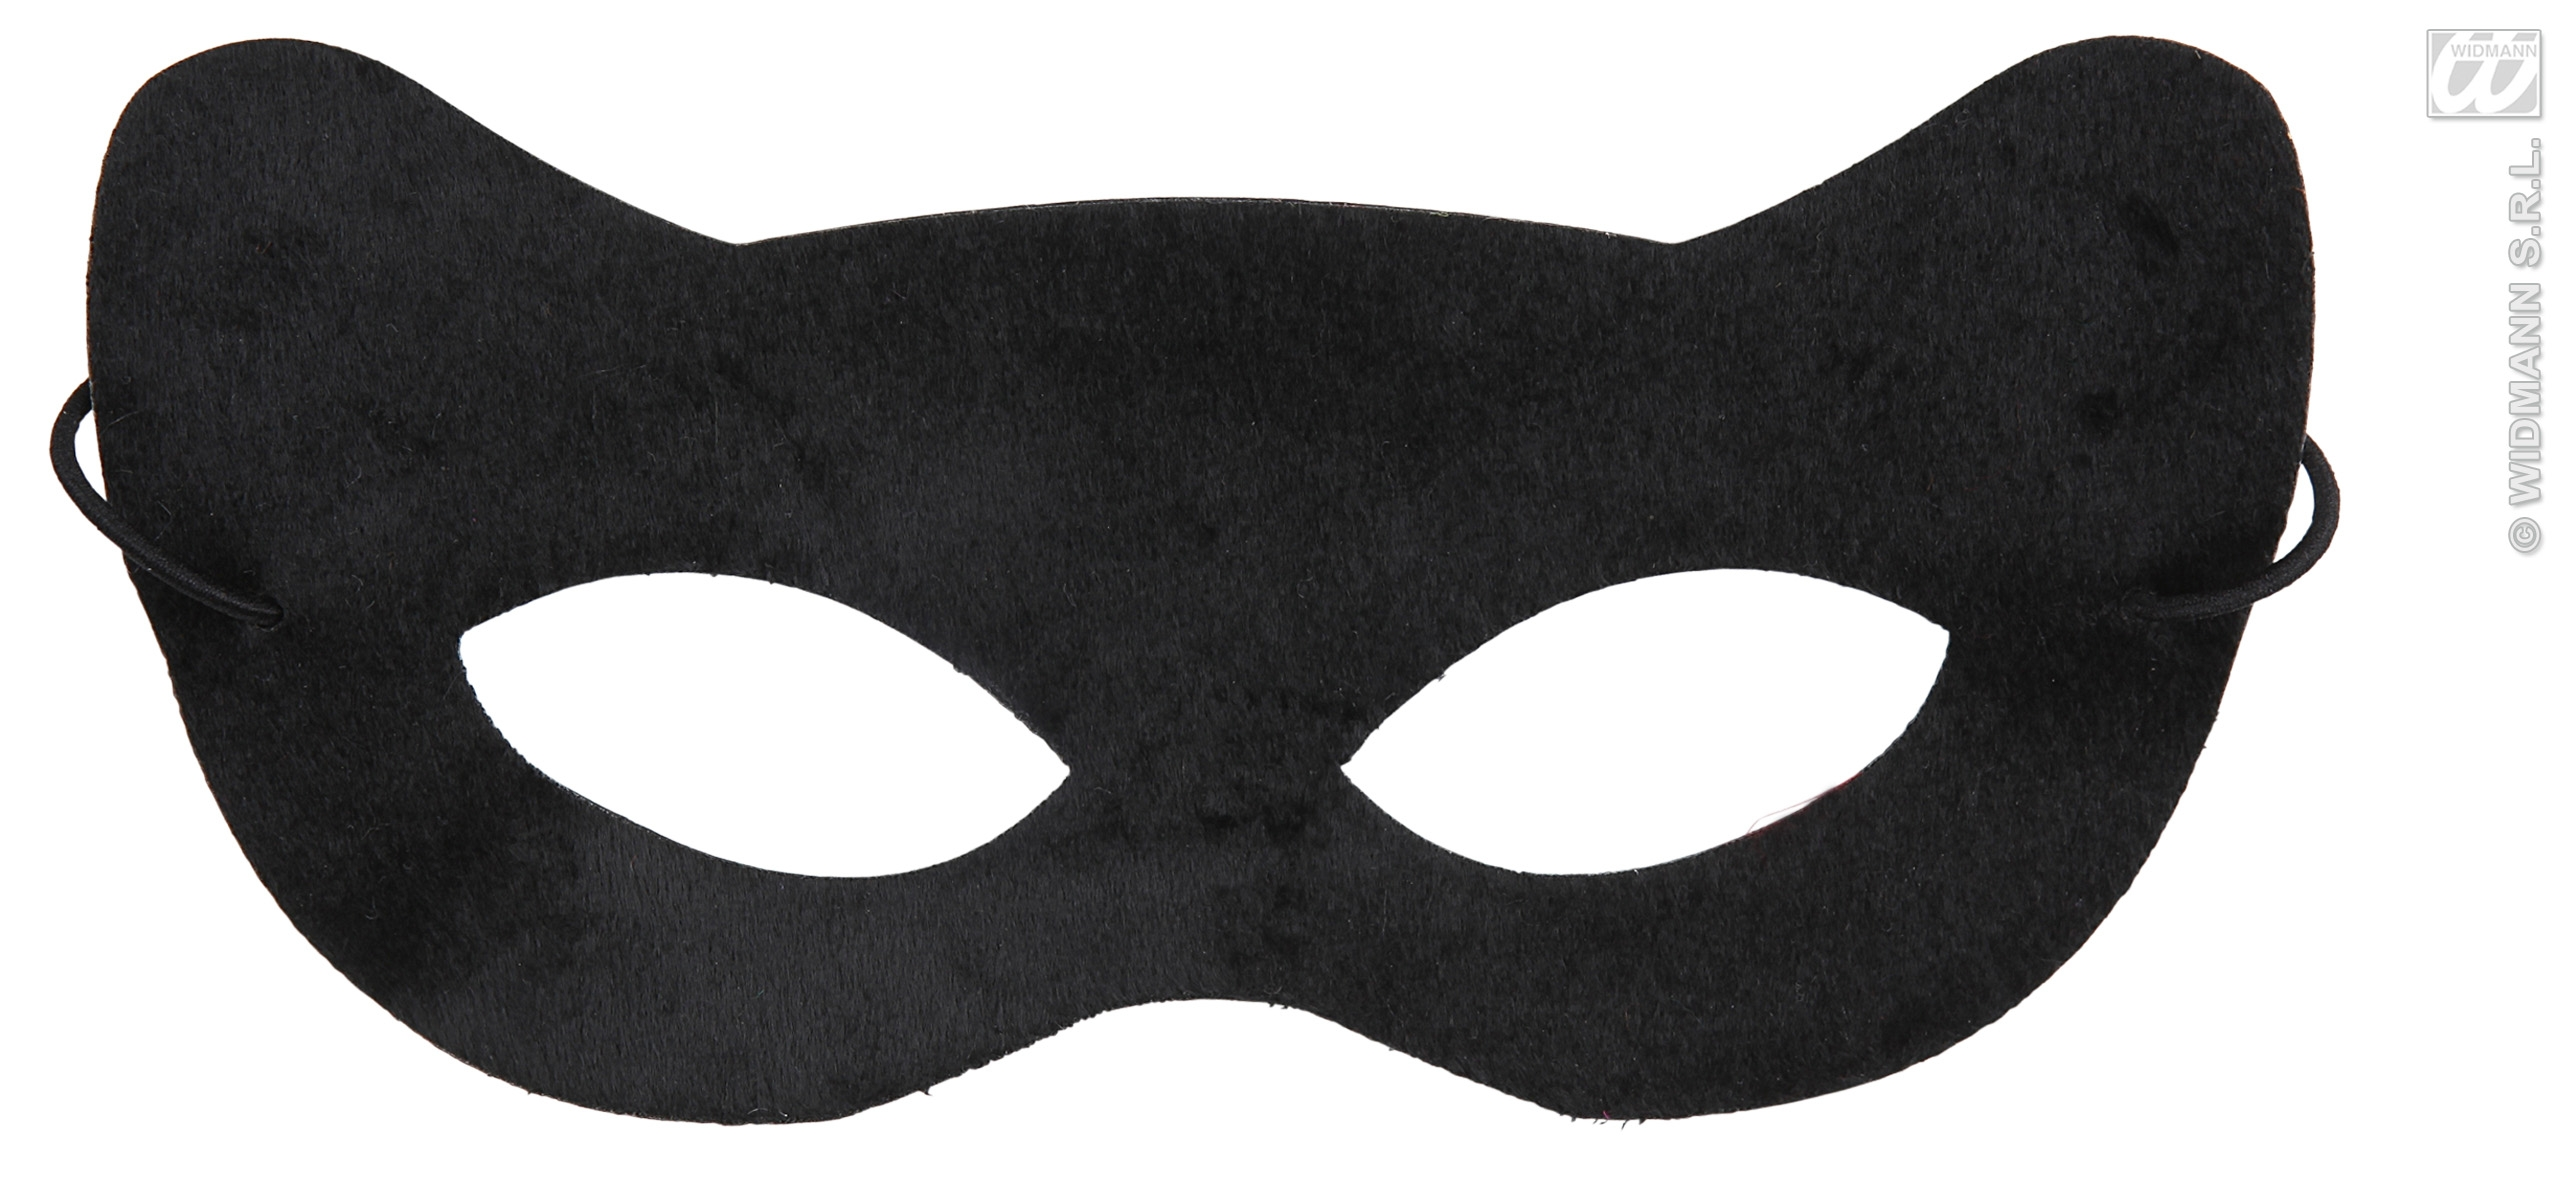 Sentinel Black Cat Eye Mask Eyemask With Ears Catwoman Halloween Fancy Dress  sc 1 st  eBay & Black Cat Eye Mask Eyemask With Ears Catwoman Halloween Fancy Dress ...